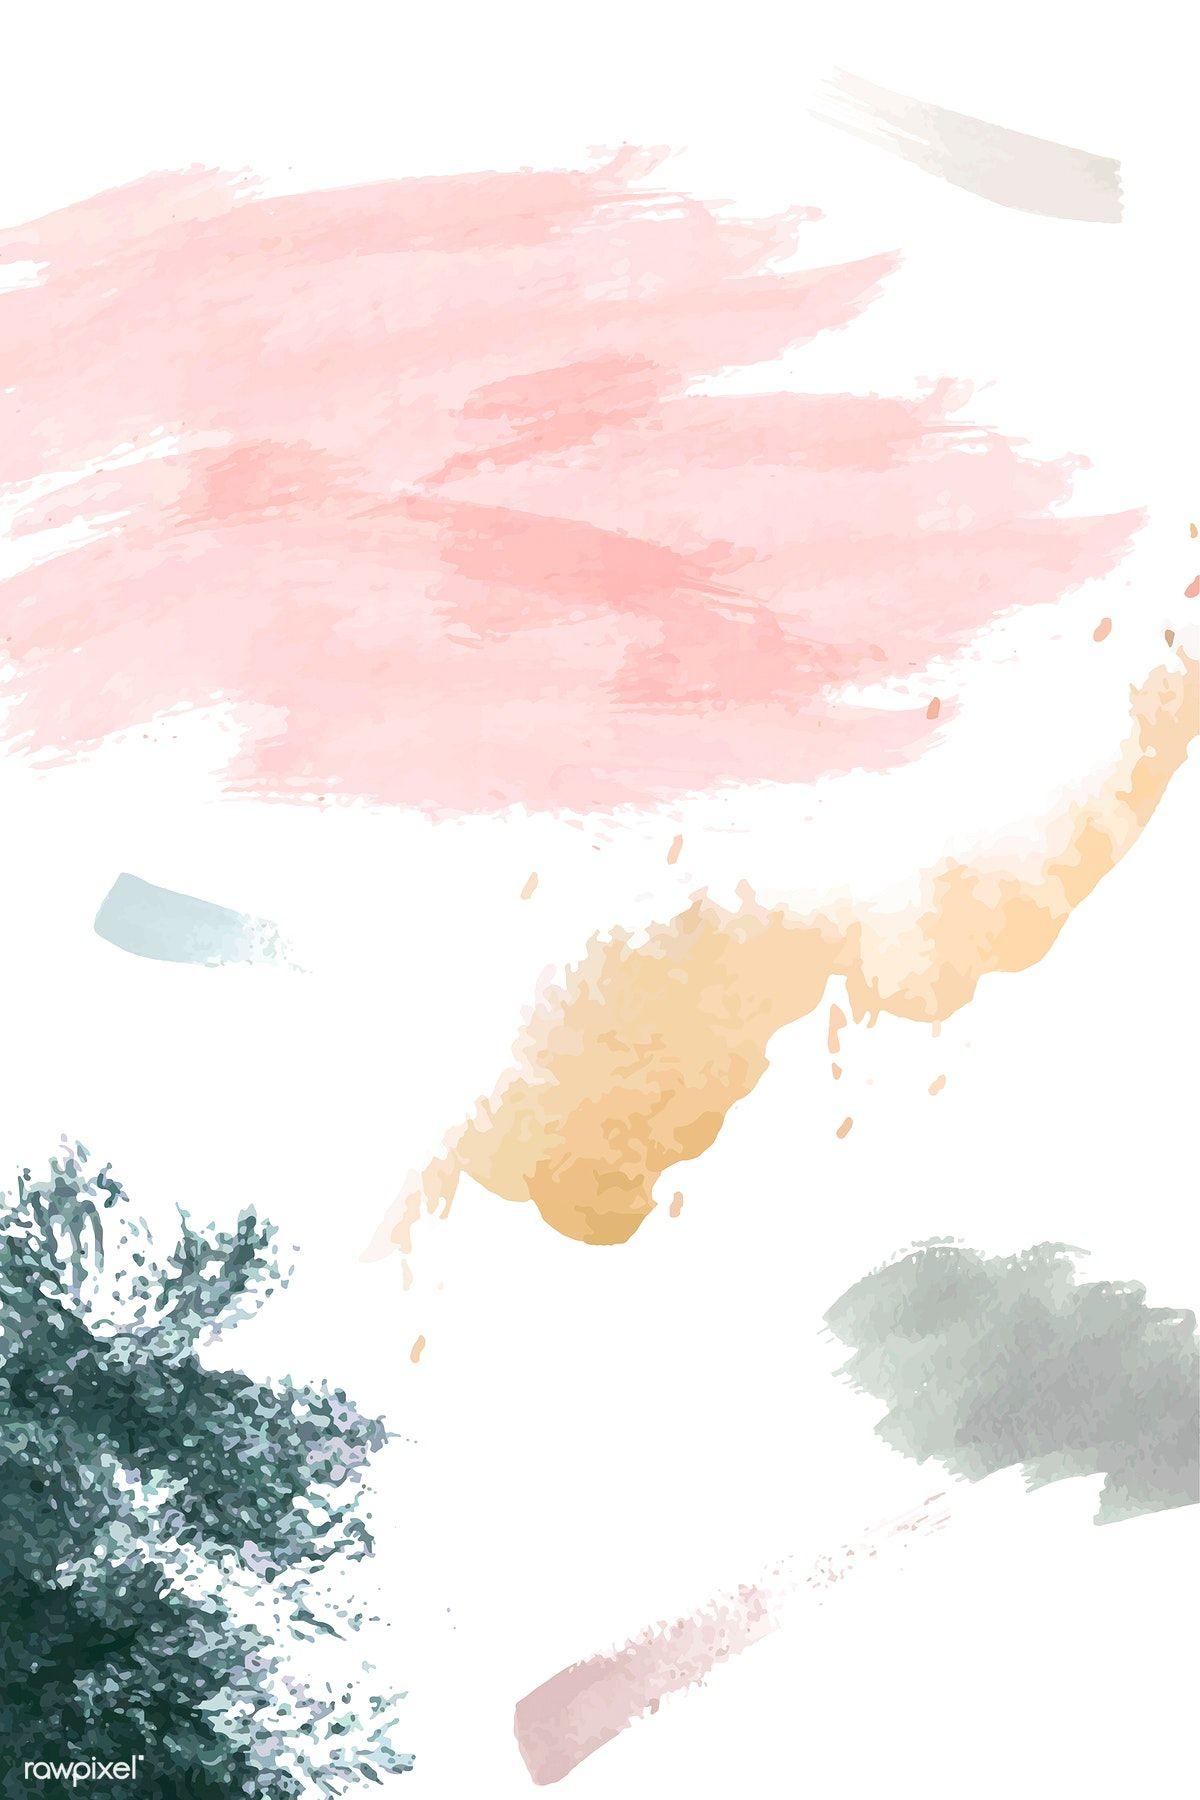 Pastel Watercolor Textured Background Vector Free Image By